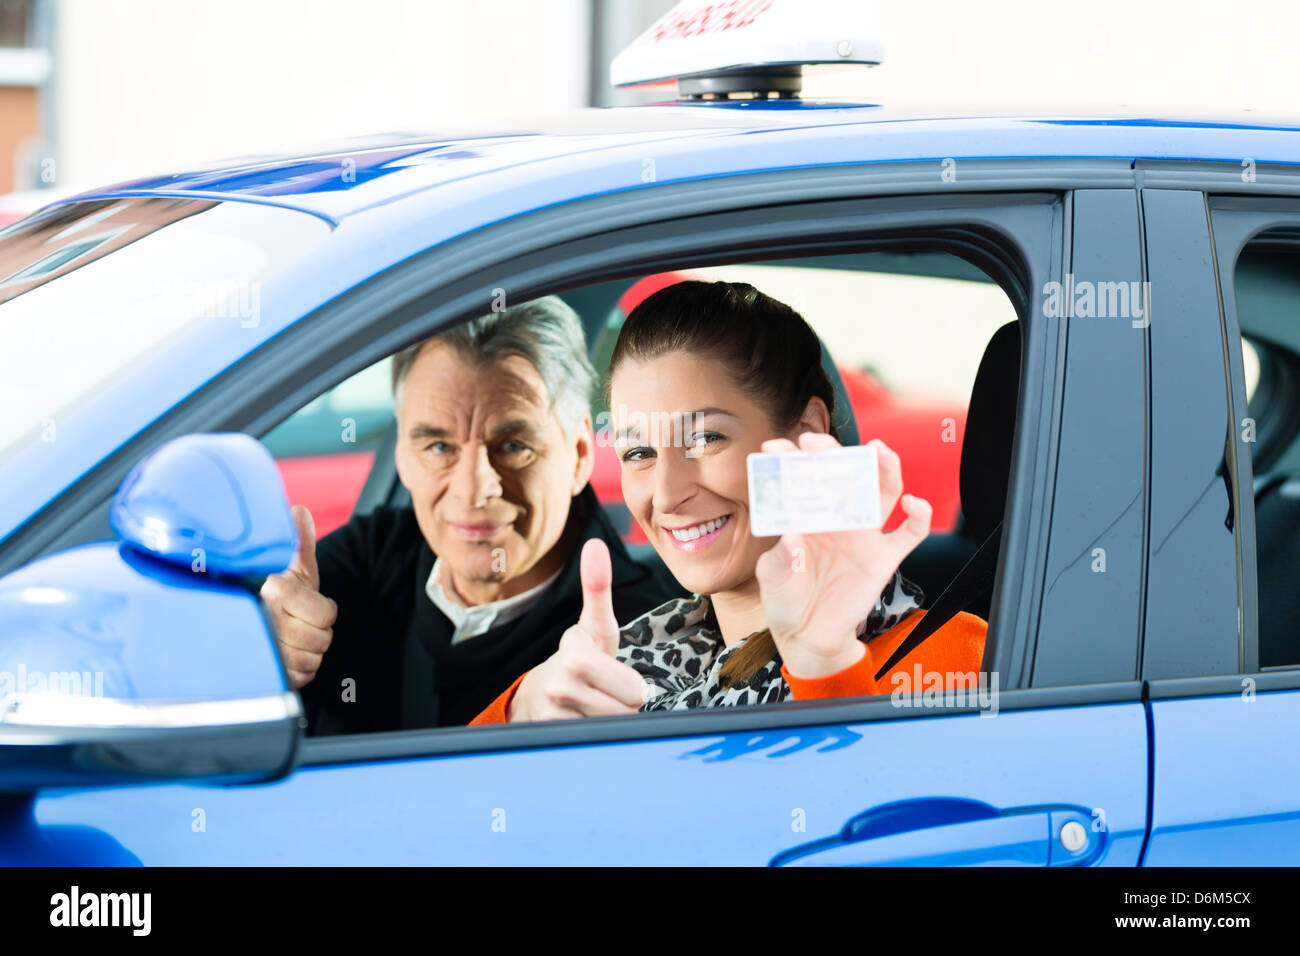 Driving School - Young woman steer a car, maybe she has a driving test, she holding proudly her driving license - Stock Image